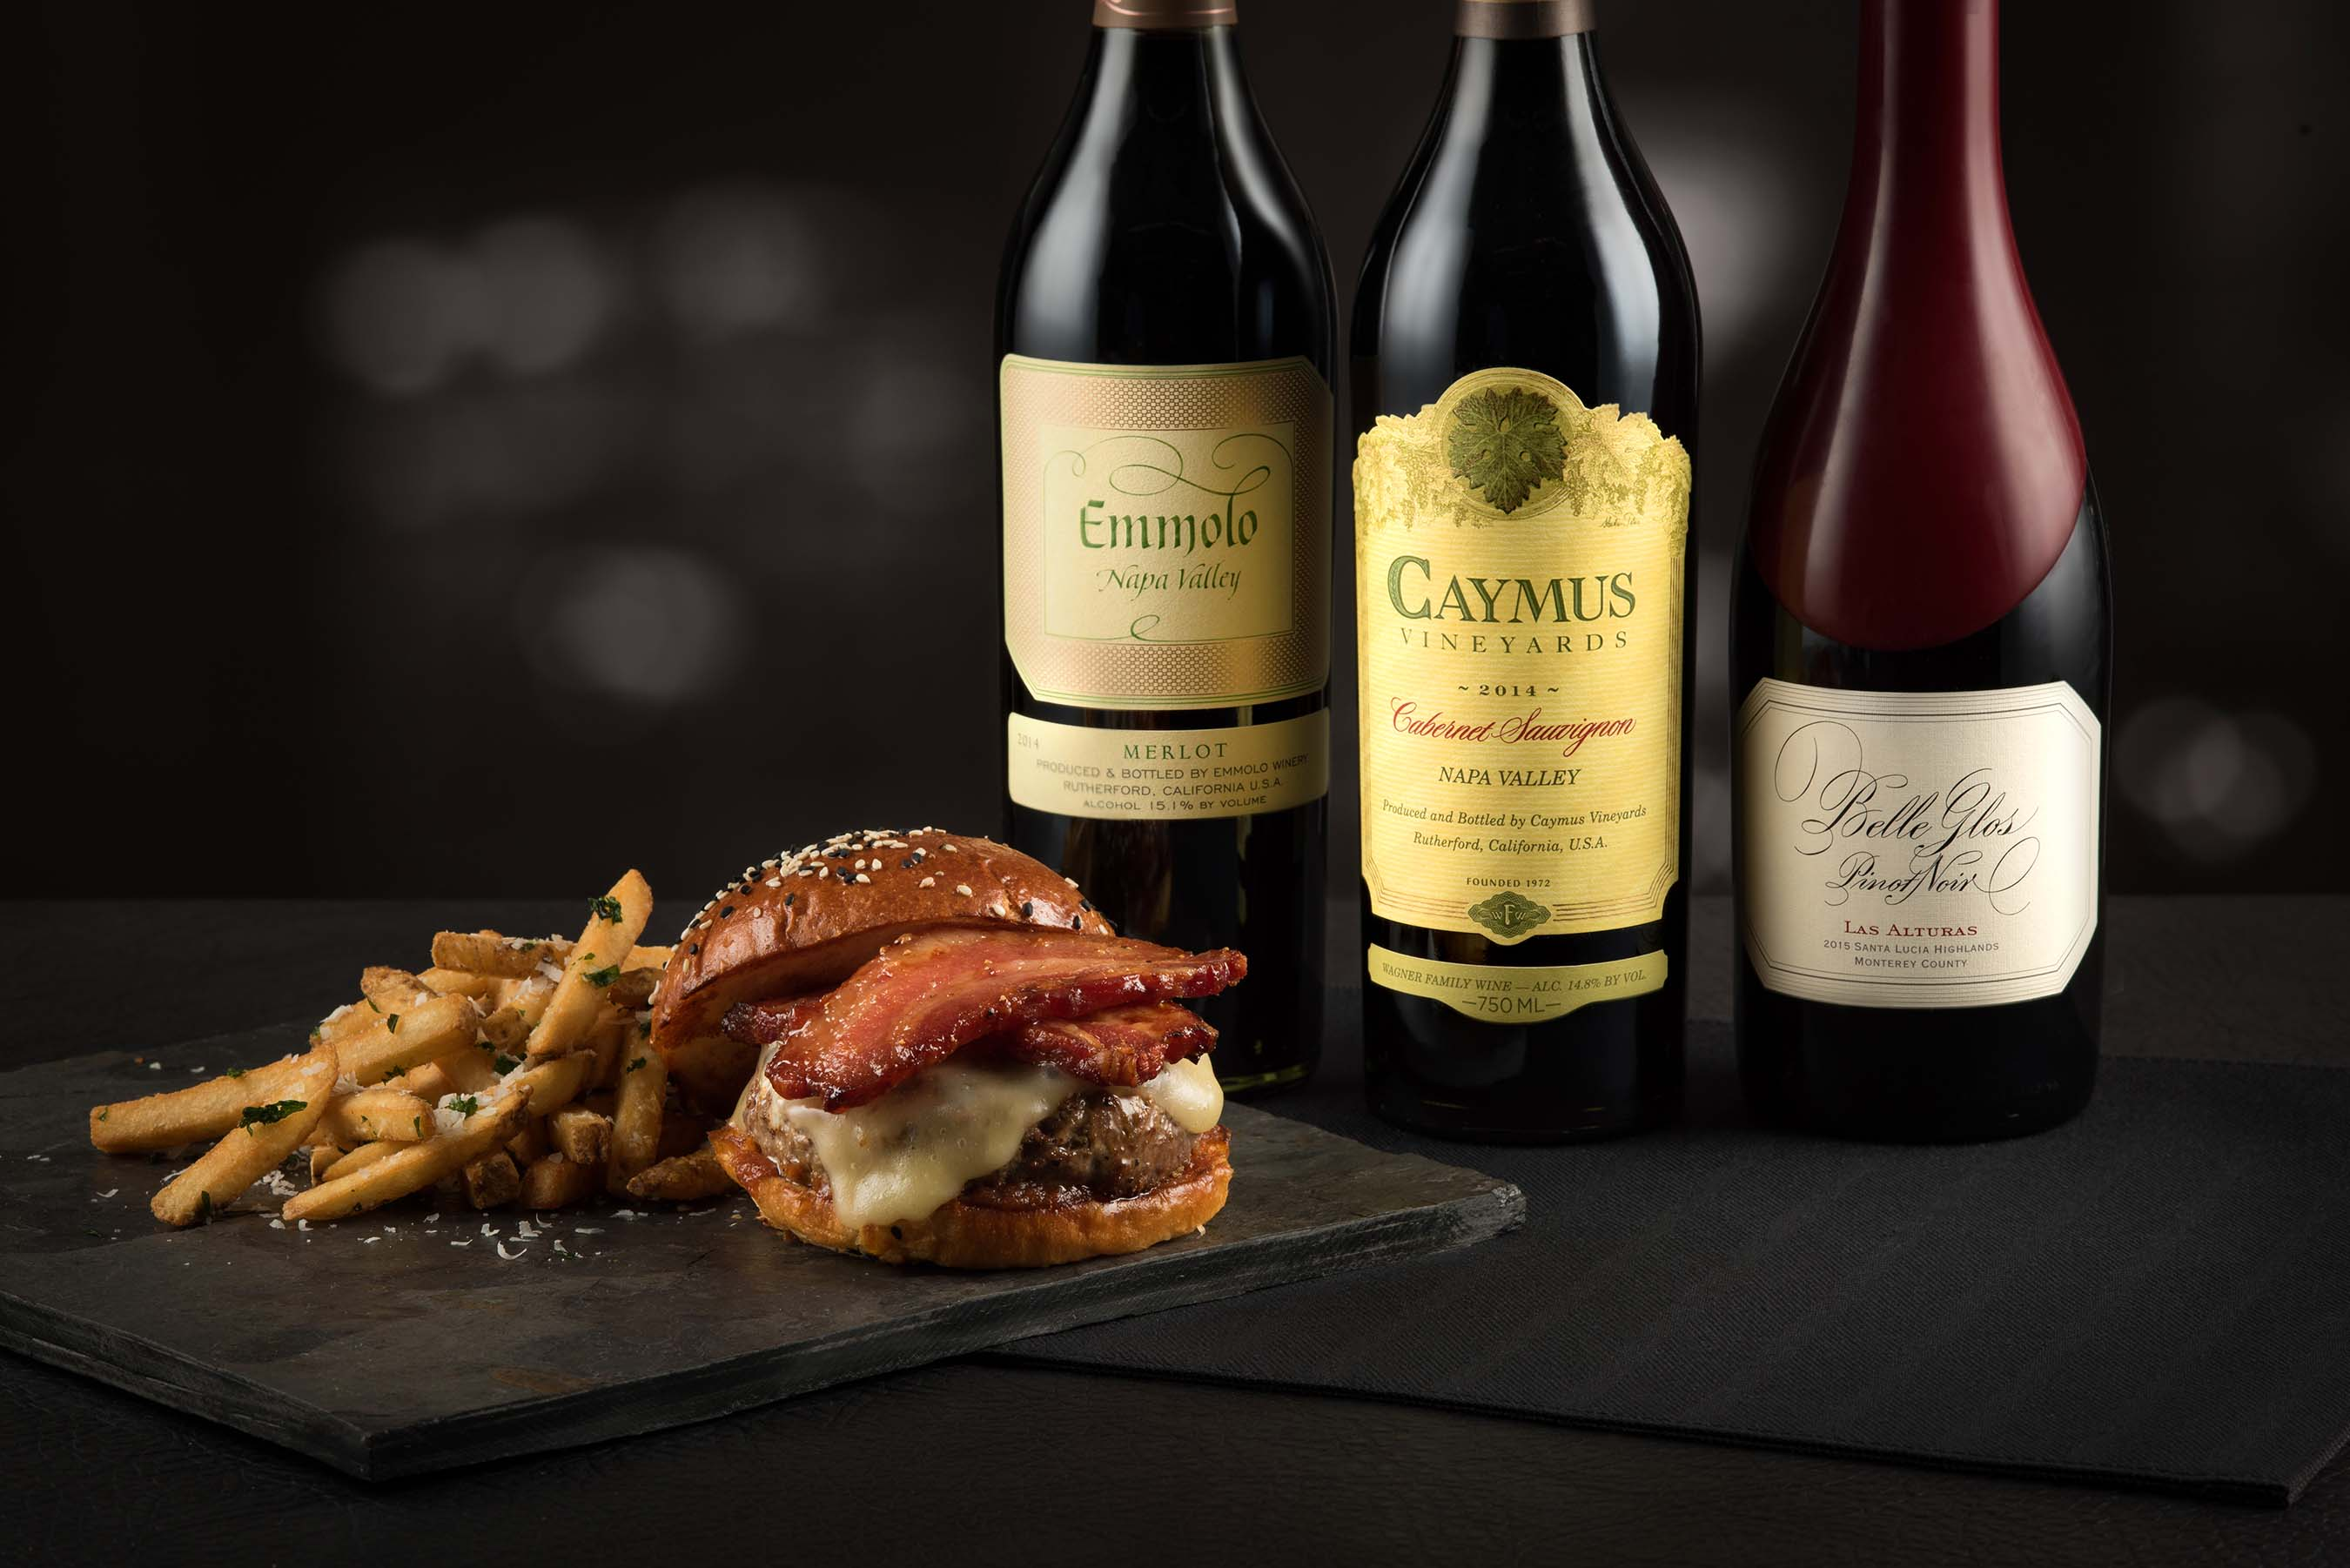 Wagyu Bacon Cheesburger with Wagner Winemakers Lineup